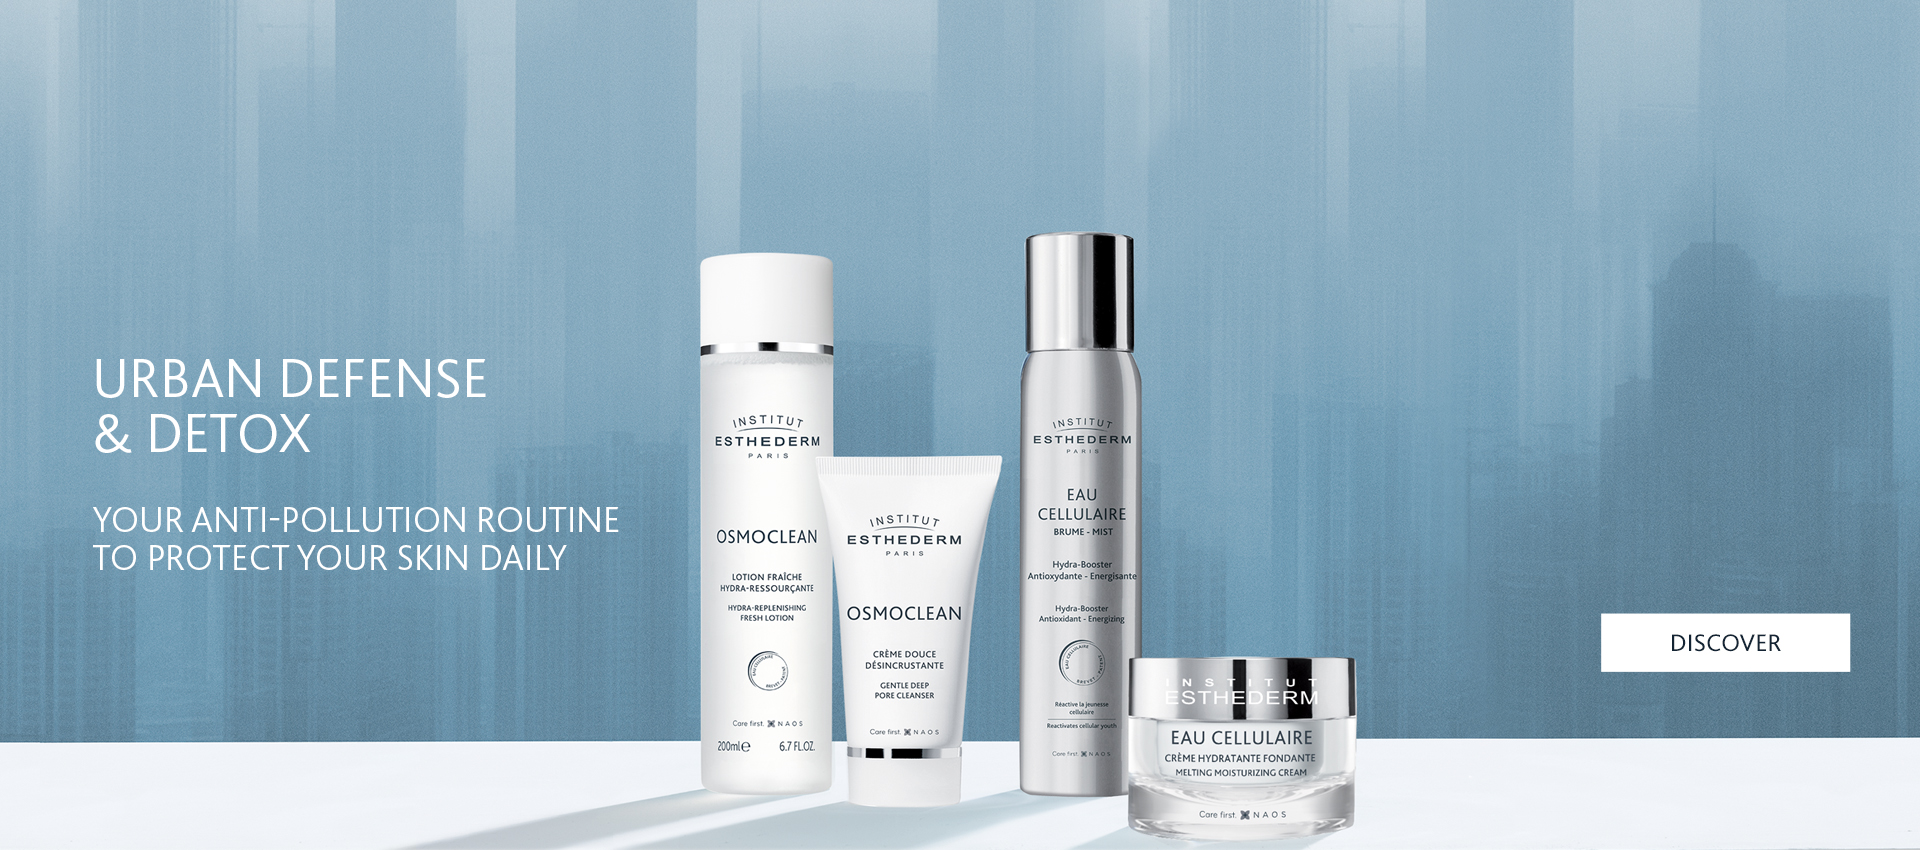 Institut Esthederm Cellular Water and Osmoclean skin detox and energising